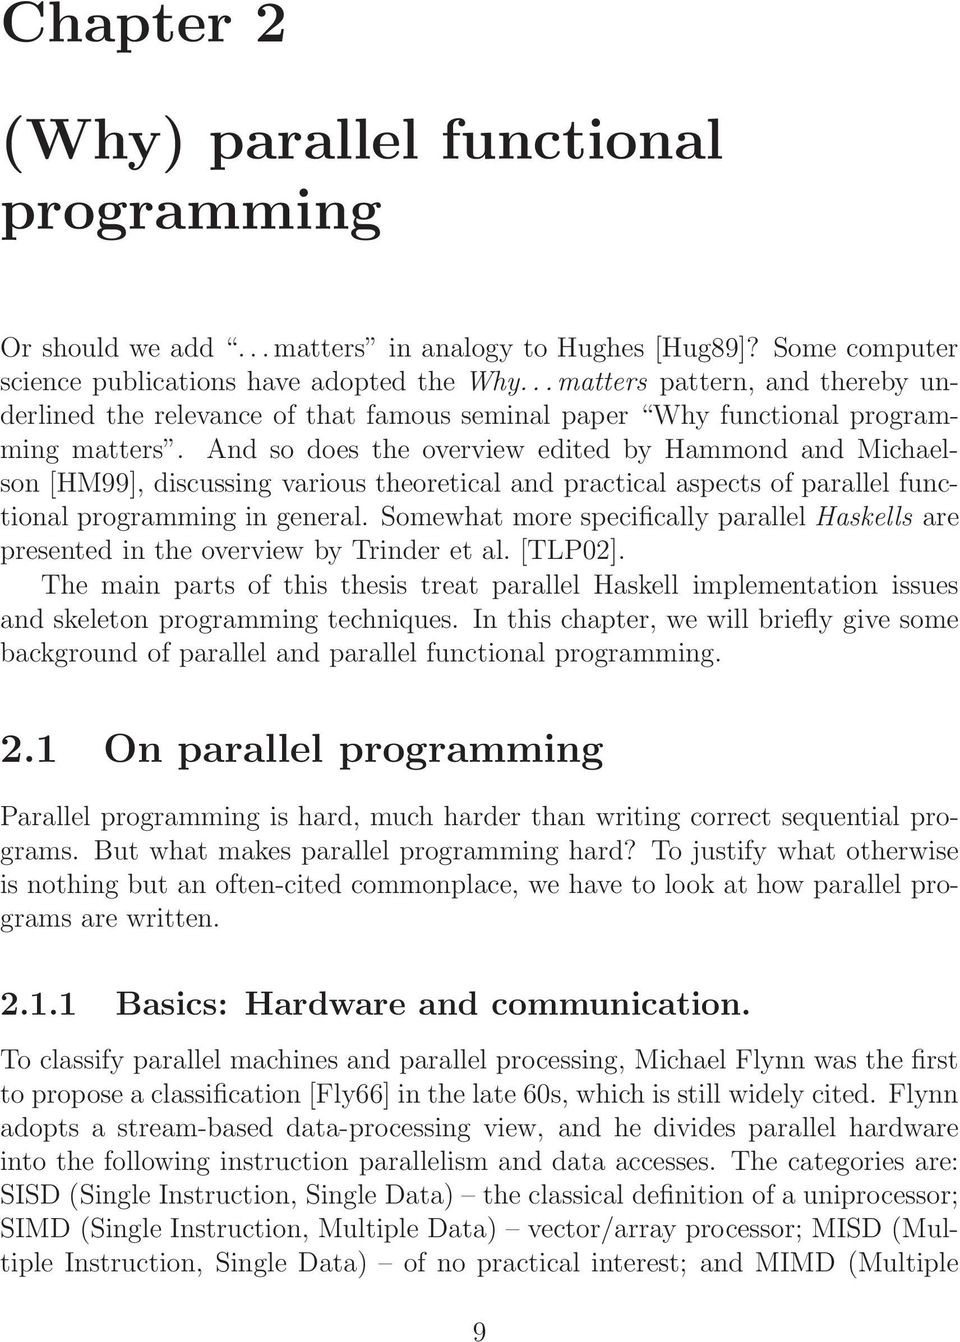 And so does the overview edited by Hammond and Michaelson [HM99], discussing various theoretical and practical aspects of parallel functional programming in general.